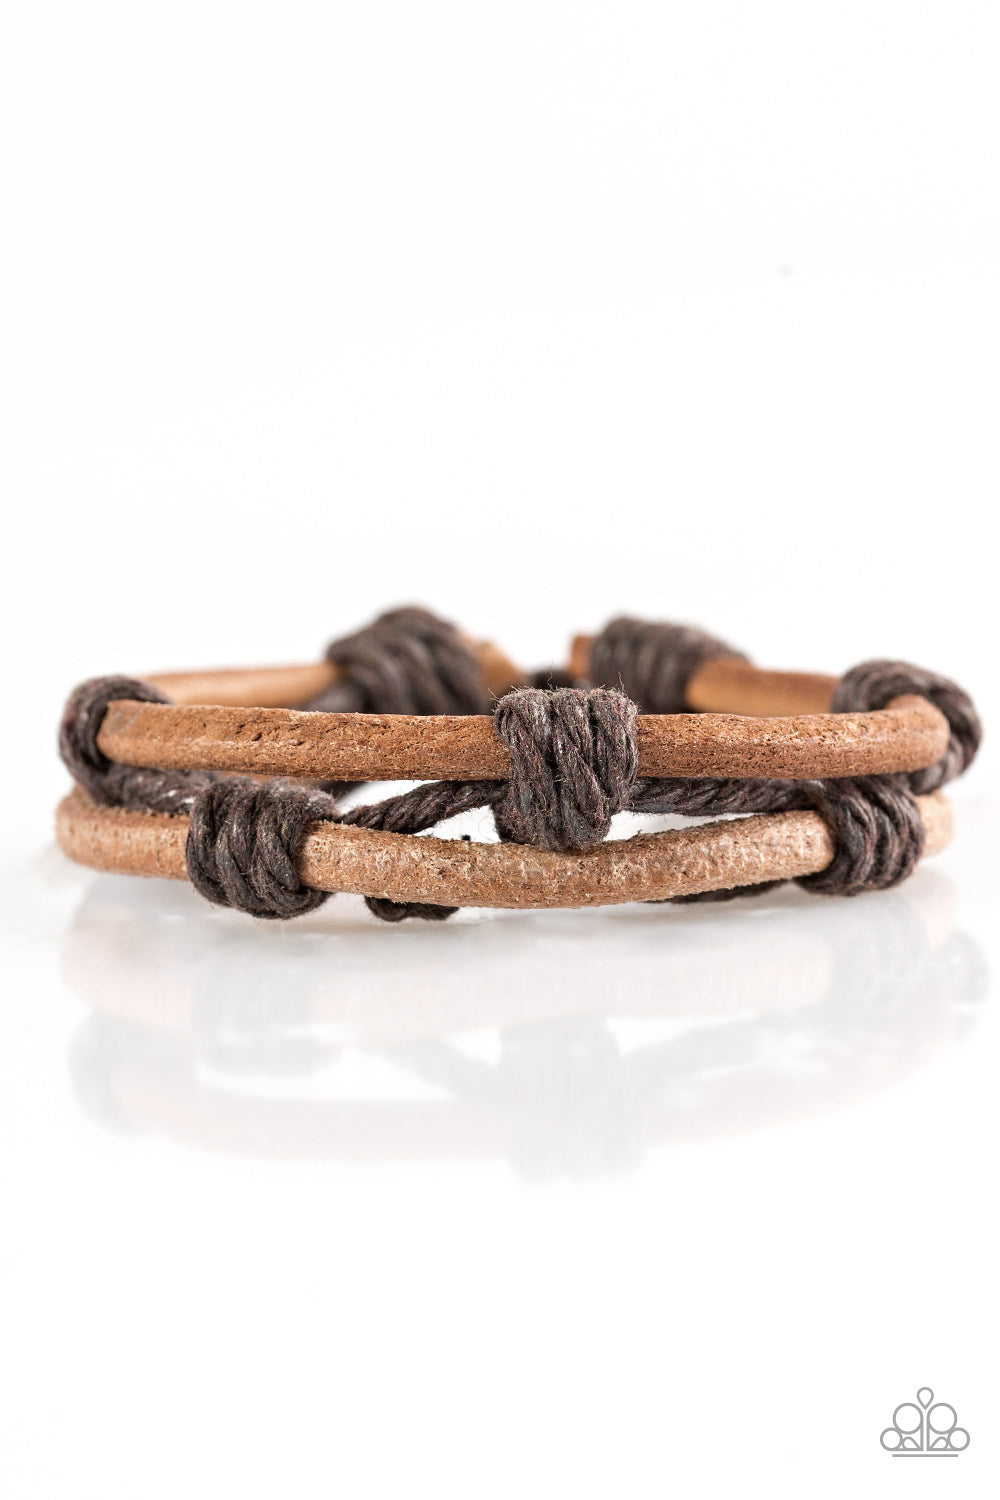 Paparazzi Accessories - Off The Beaten Path - Brown Bracelet - JMJ Jewelry Collection